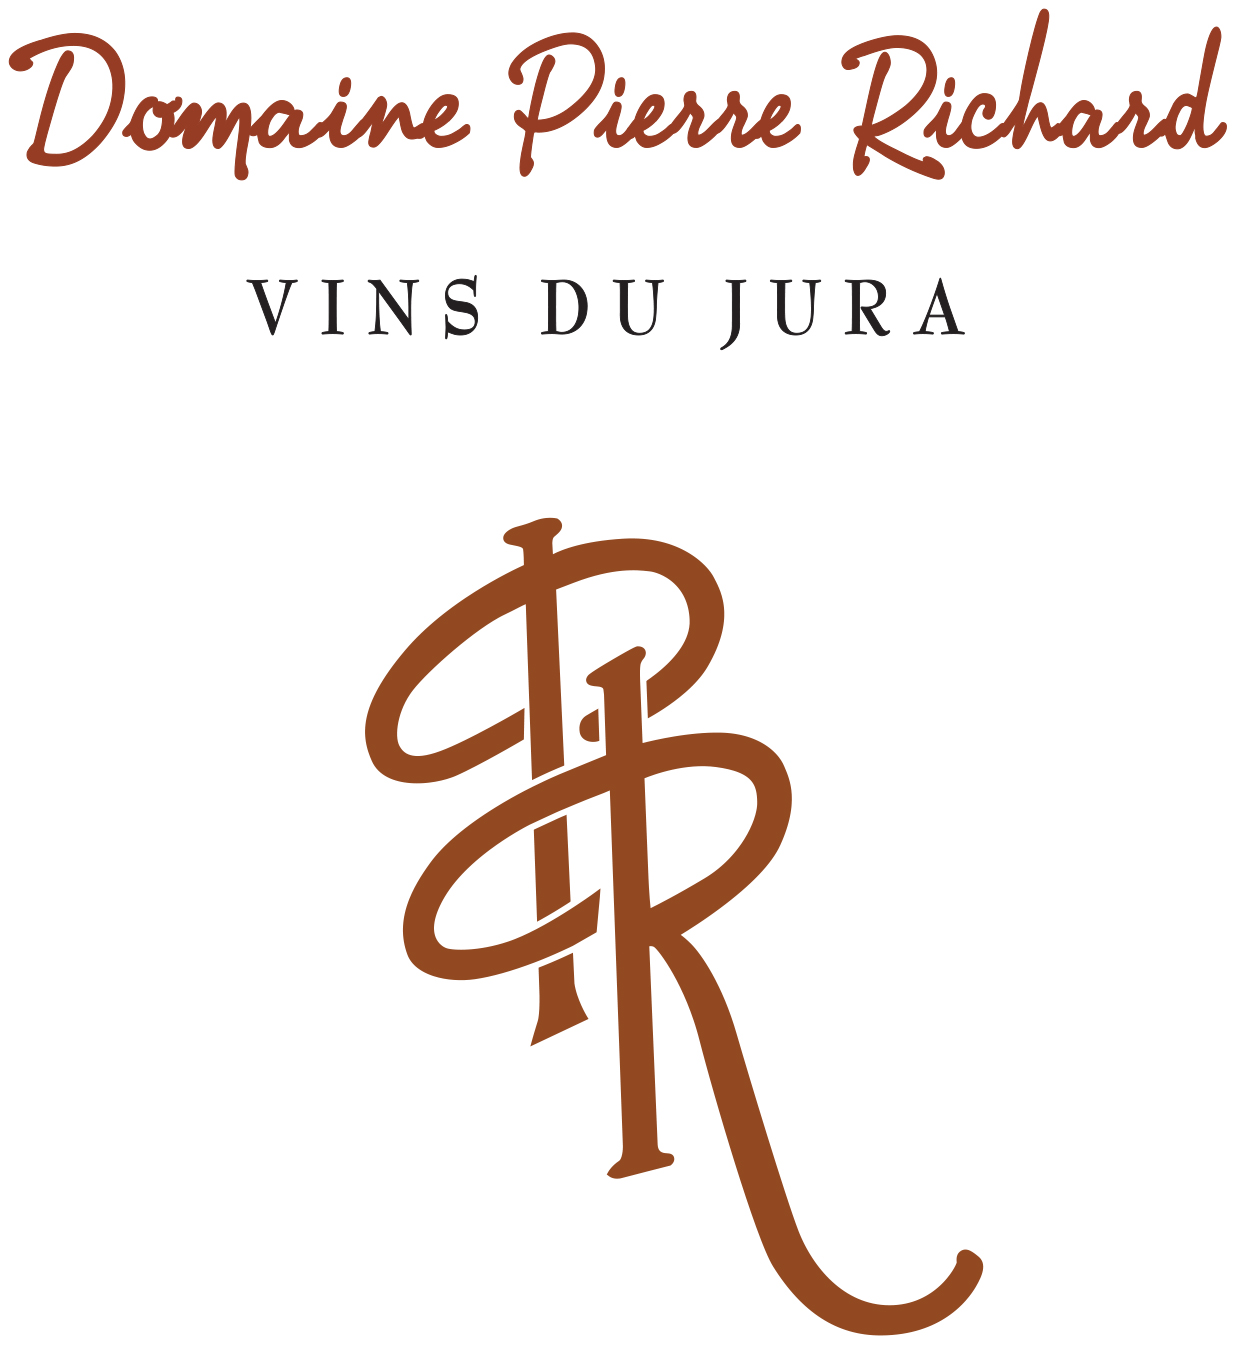 Pierre Richard Logo.jpg